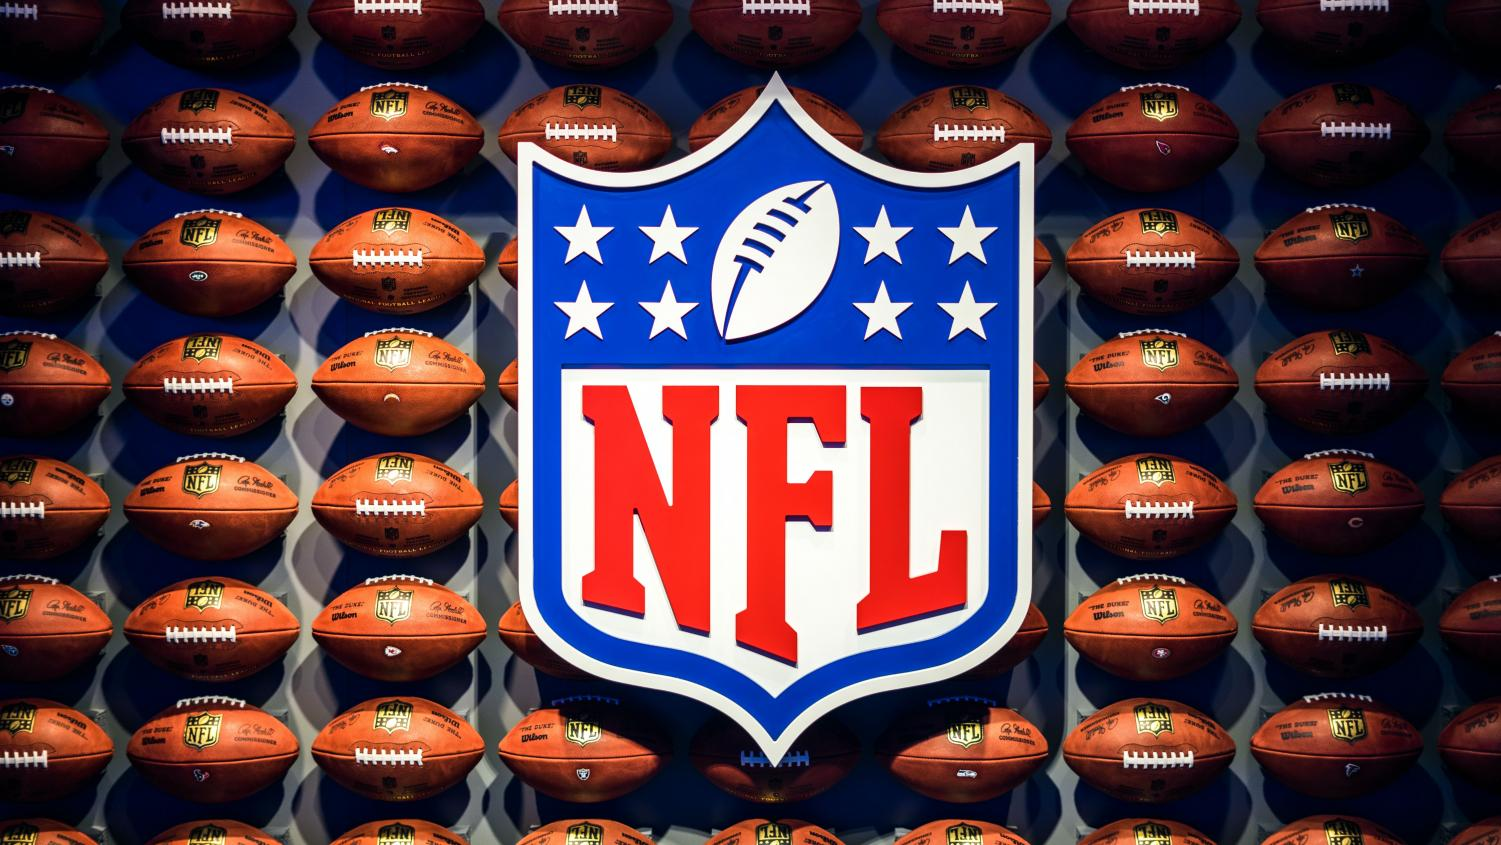 NFL Playoff Picture-Week 13 Standings, Projected Bracket, and Predictions for the Remainder of the Season